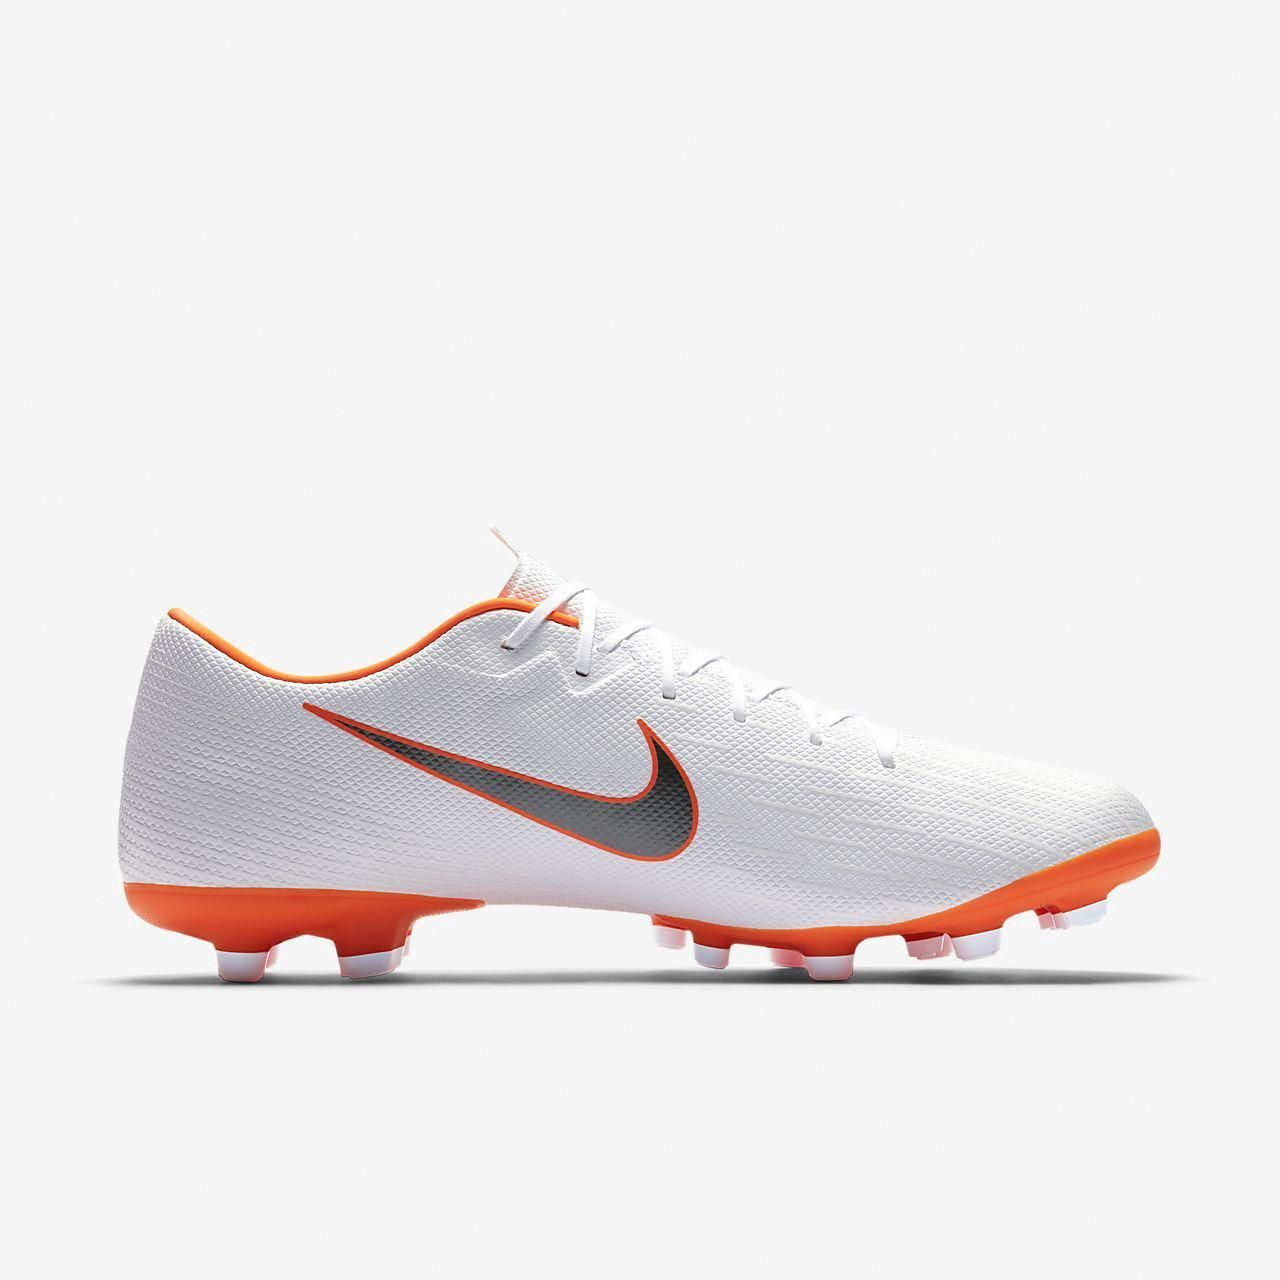 Nike Mercurial Vapor Xii Academy Mg Just Do It Multi-Ground Soccer Cleat -  M 12 / W 13.5 Grey #vaporizers   Nike football, Soccer cleats, Nike